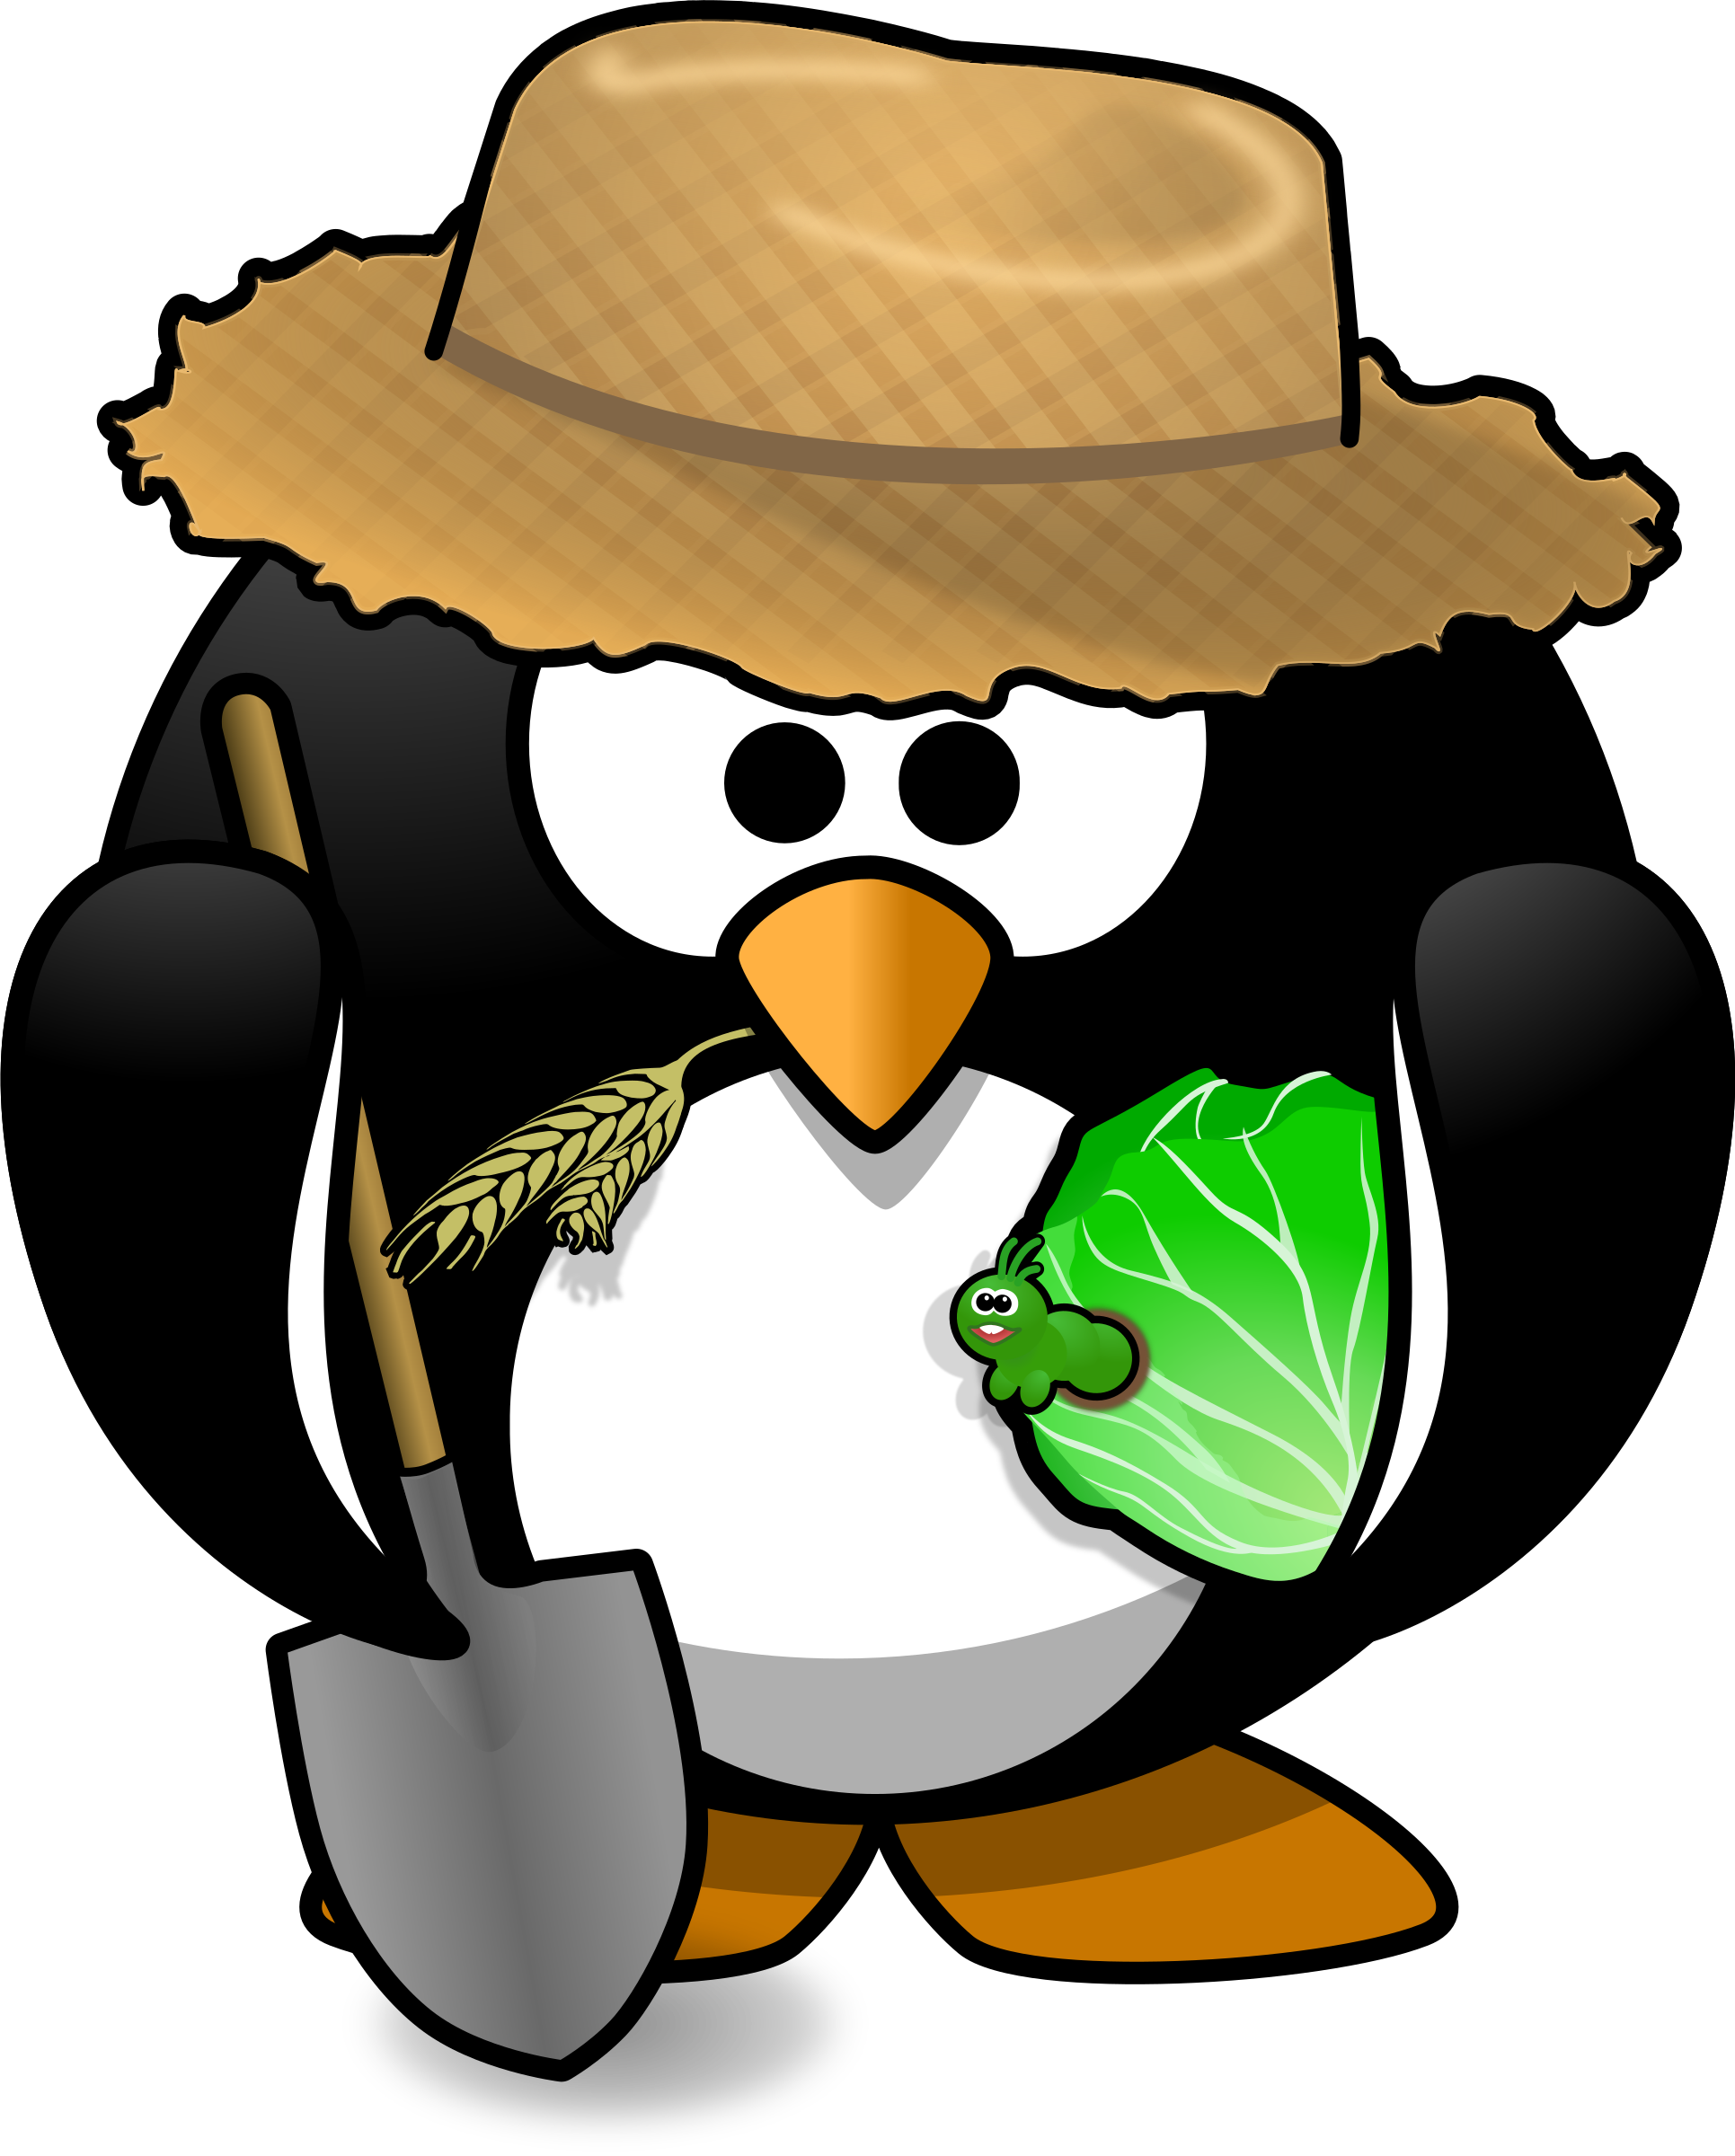 Farmer penguin by Moini